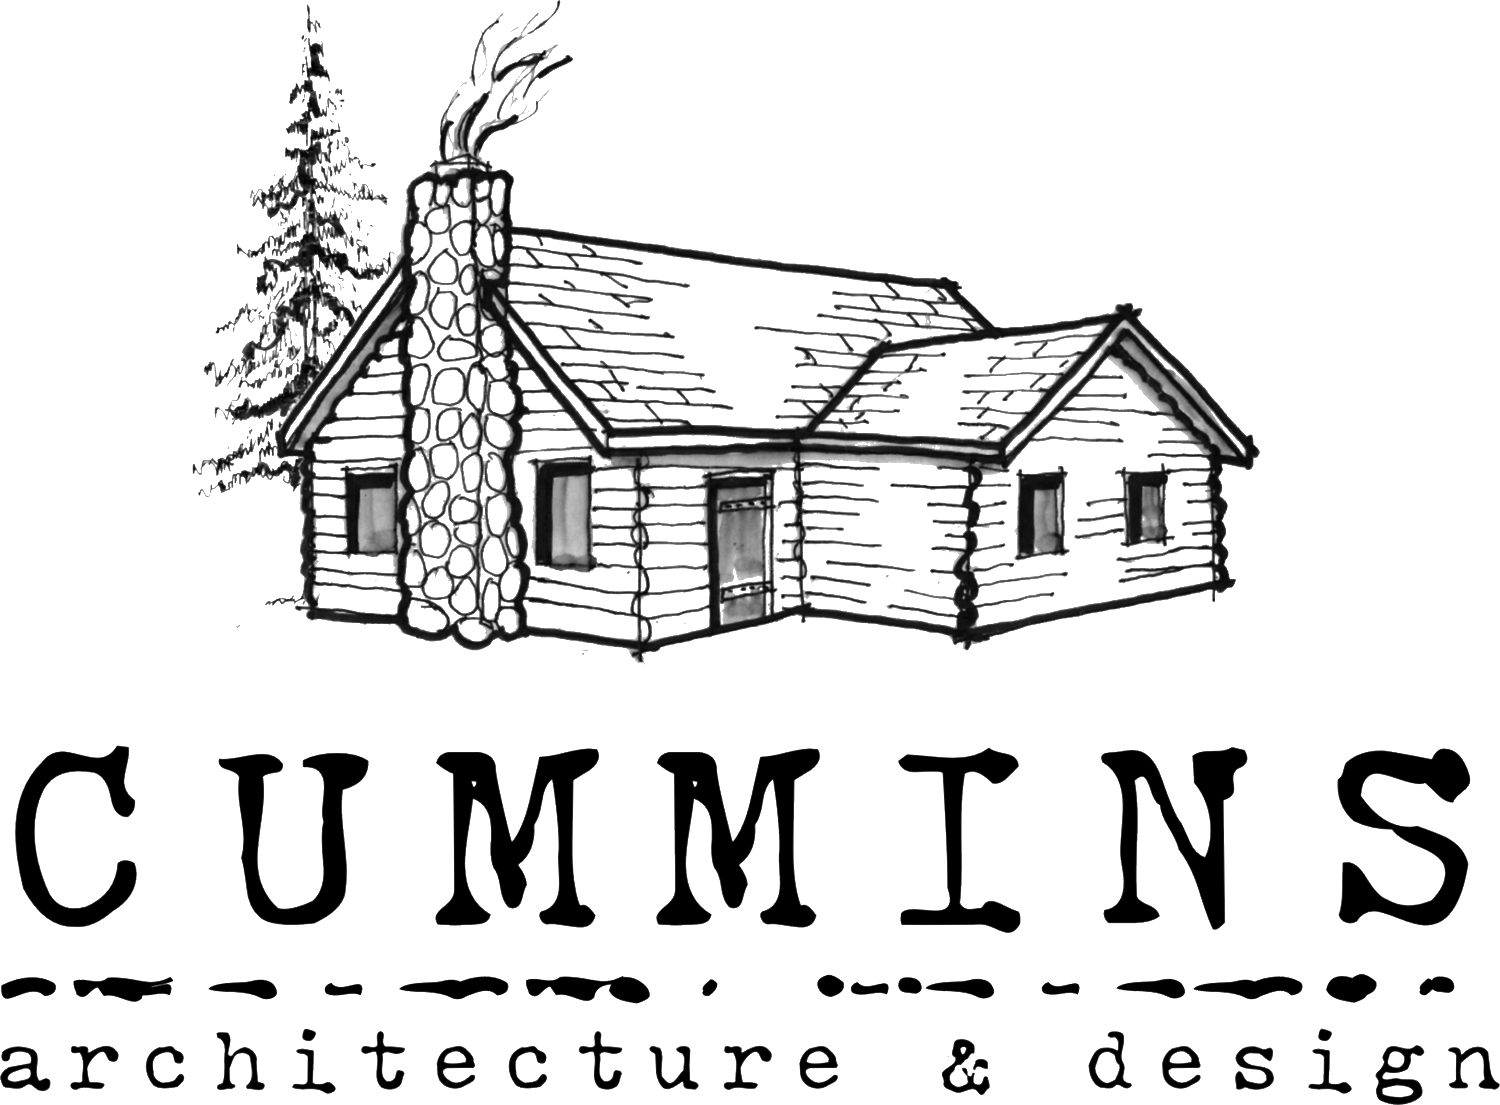 Cummins Architecture